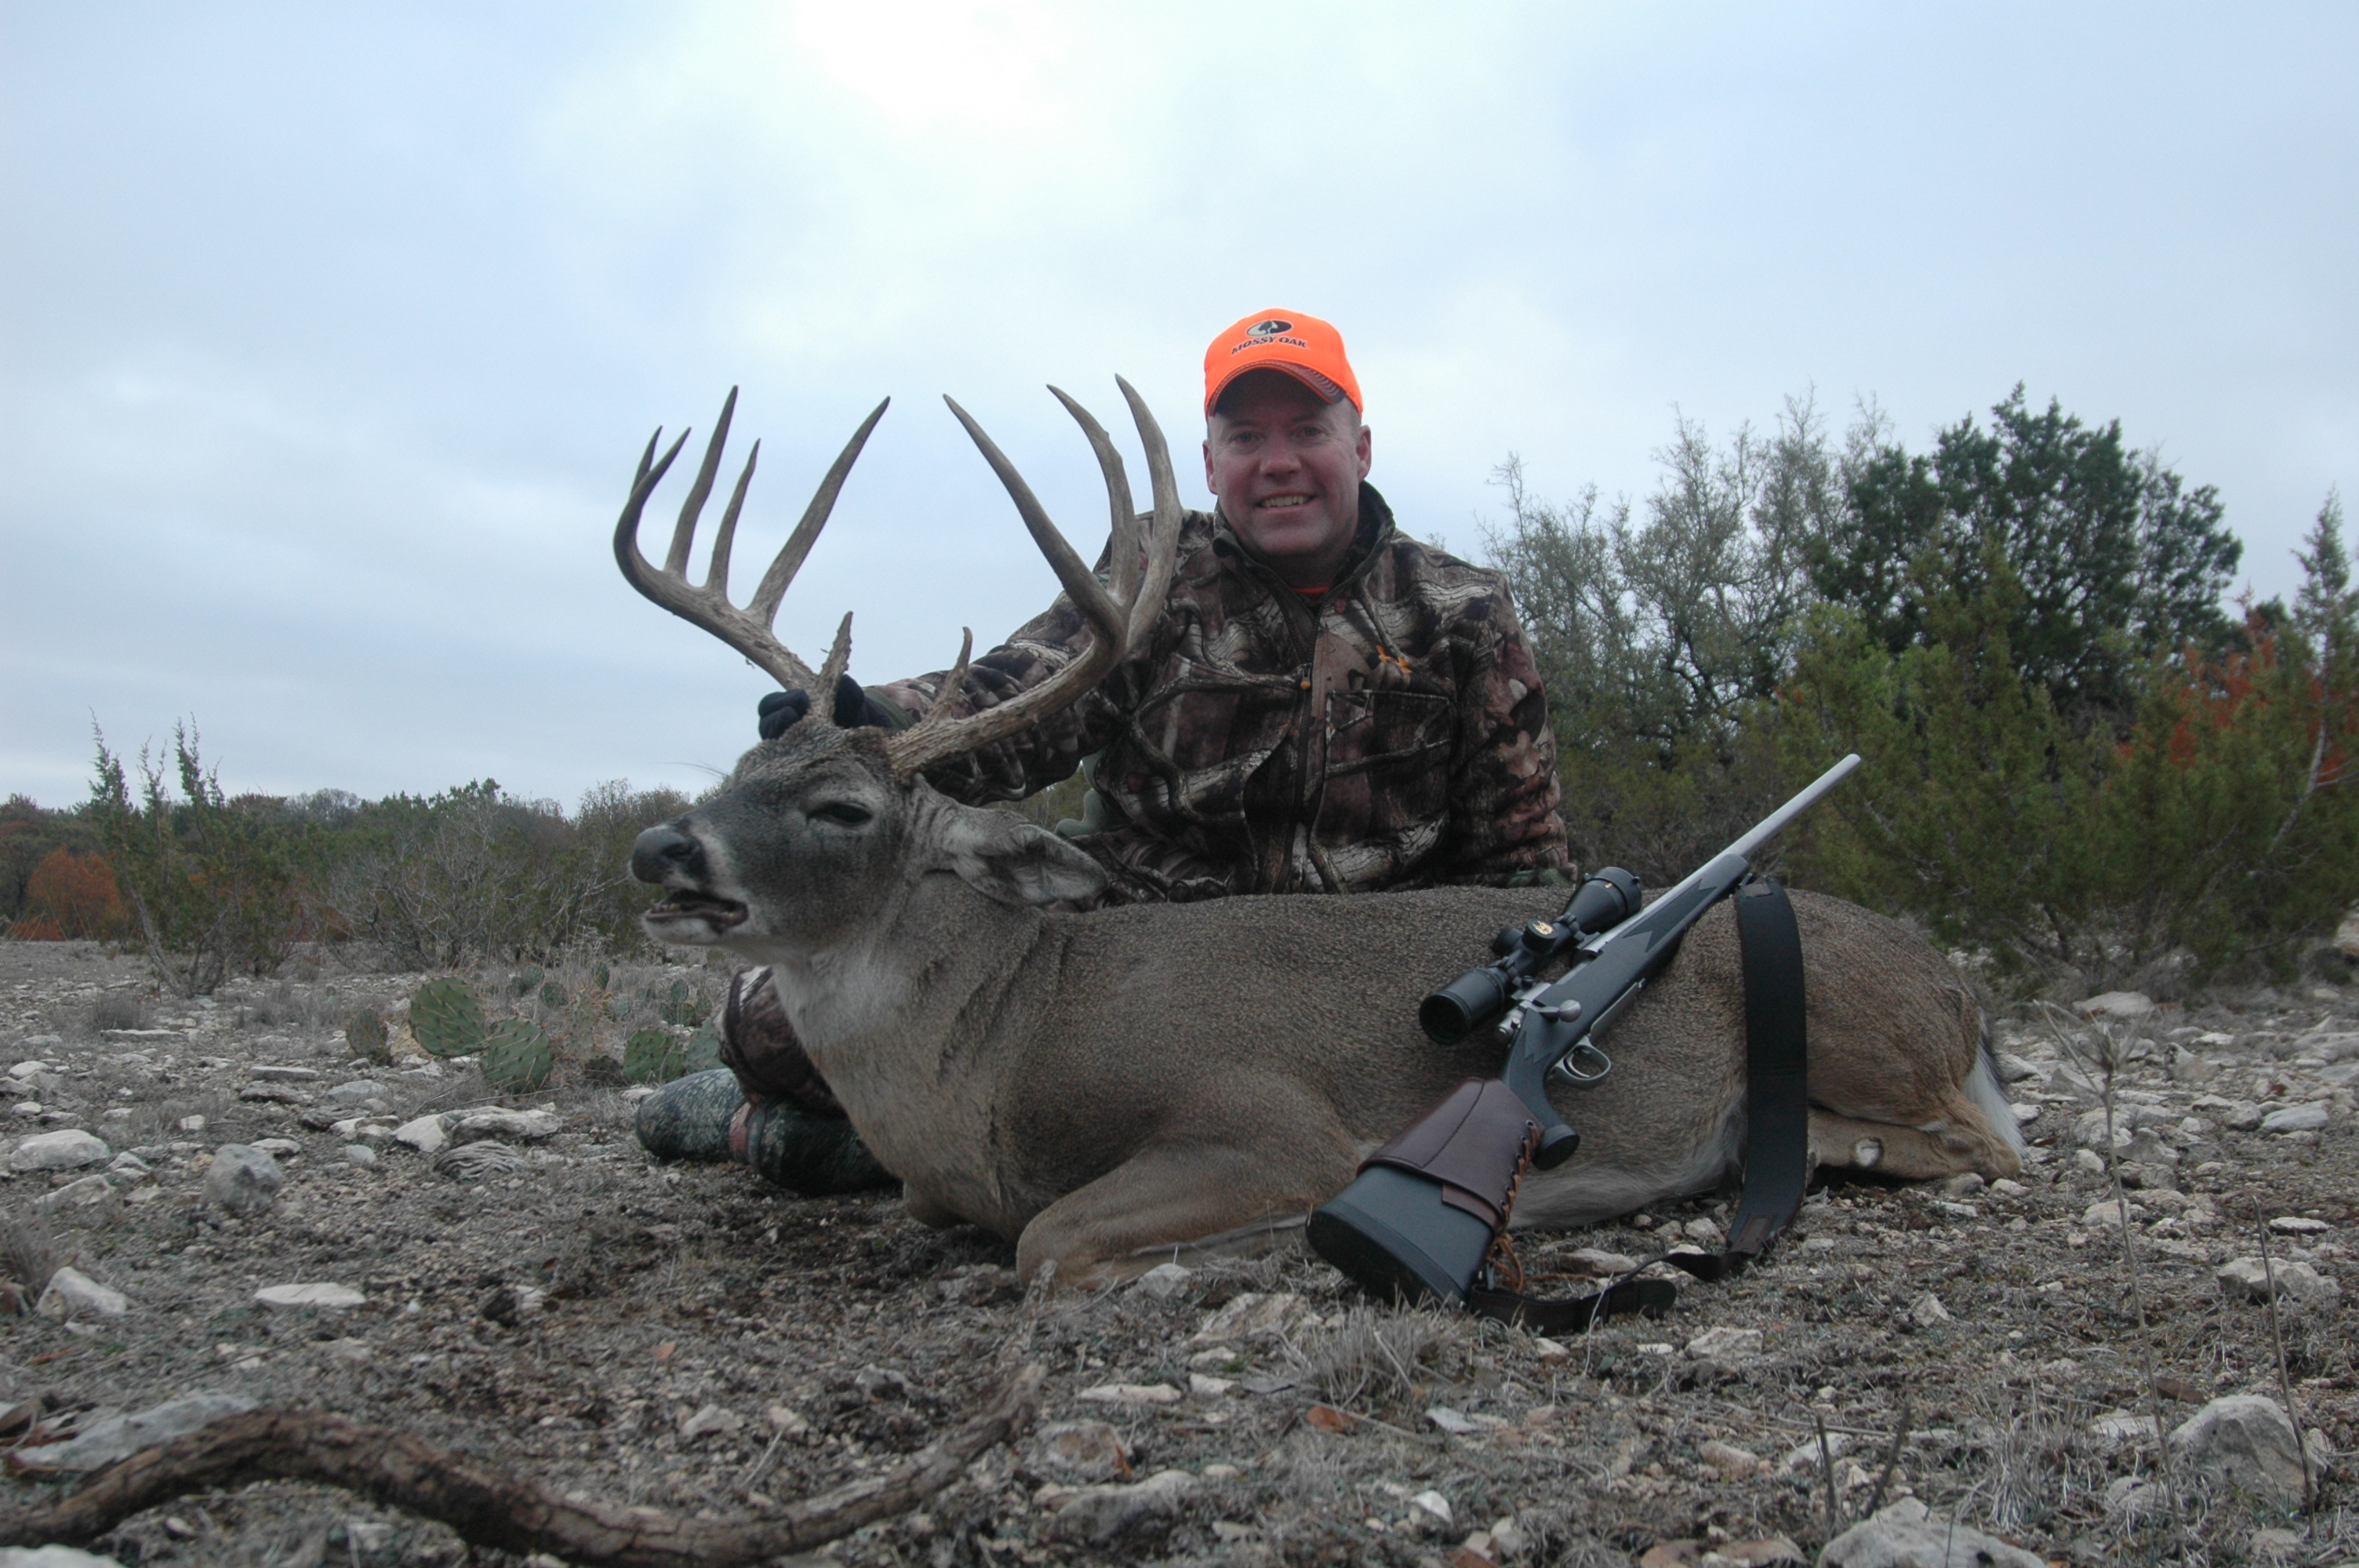 D&DH Editor Dan Schmidt is all smiles after bagging this 6-1/2-year-old buck at Vatoville Outdoors free-ranging ranch near Sonora, Texas.